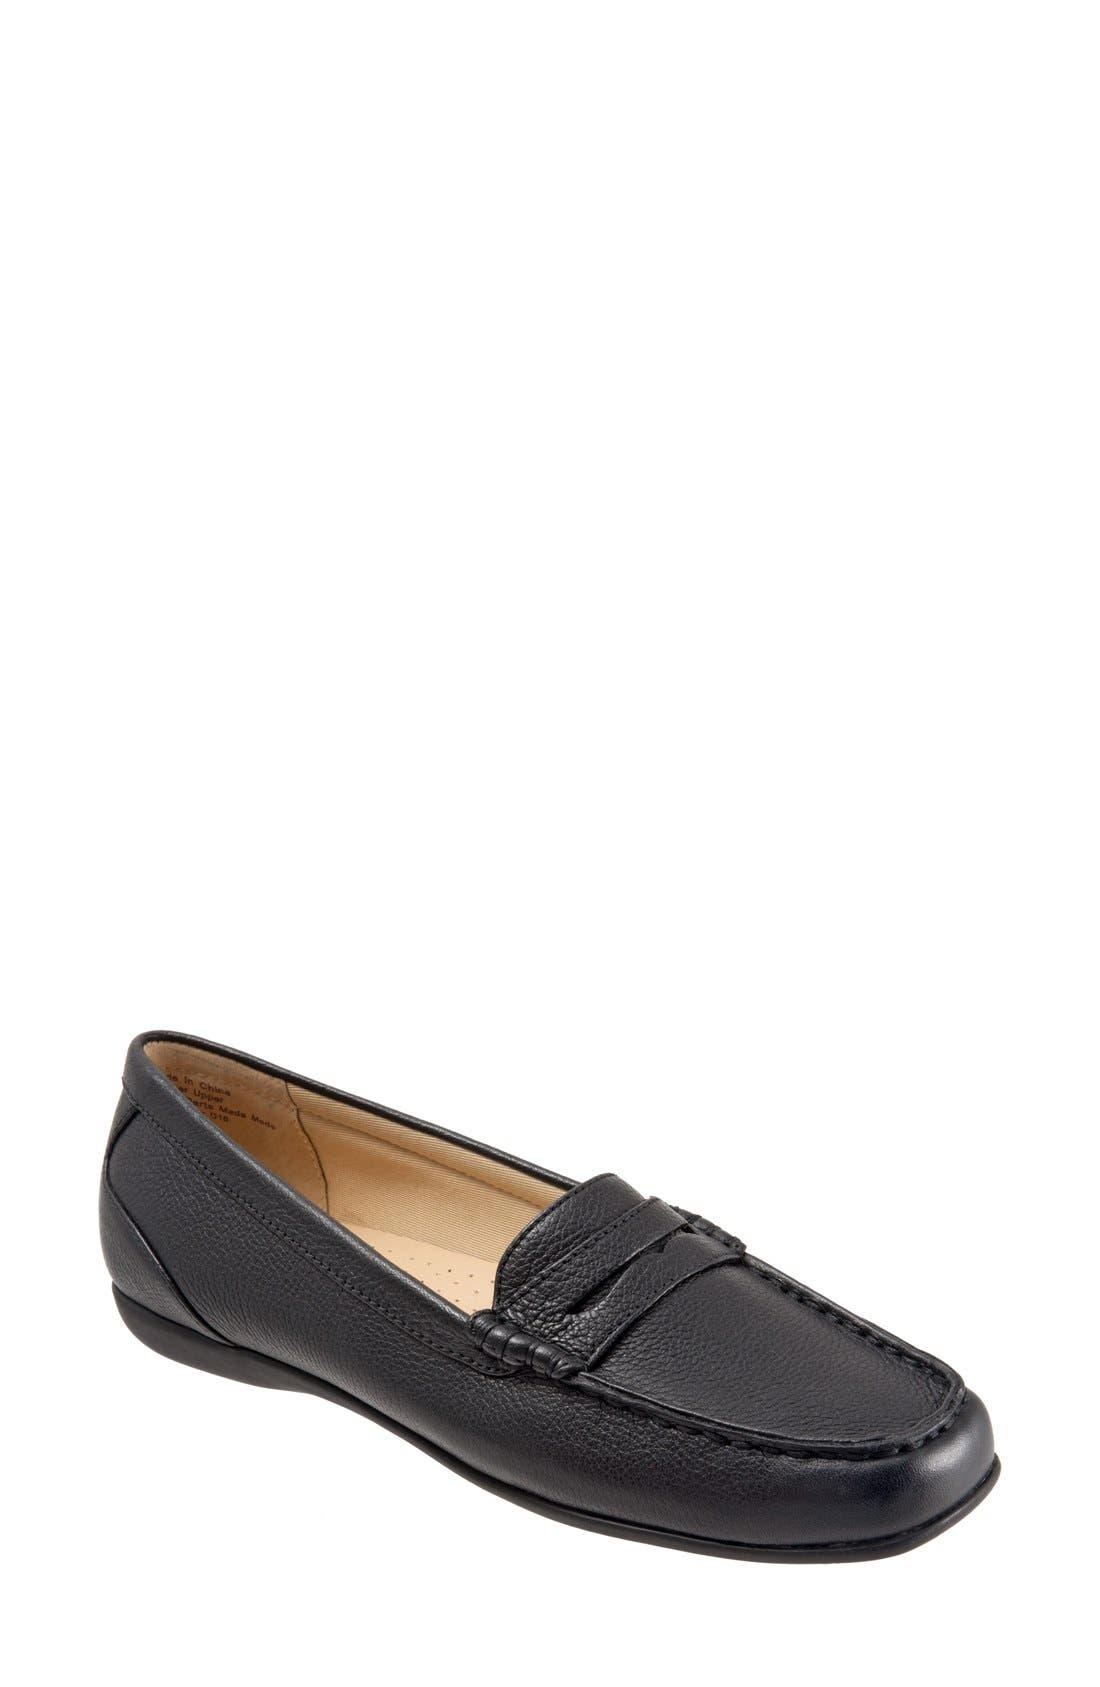 'Staci' Penny Loafer,                             Main thumbnail 1, color,                             BLACK LEATHER